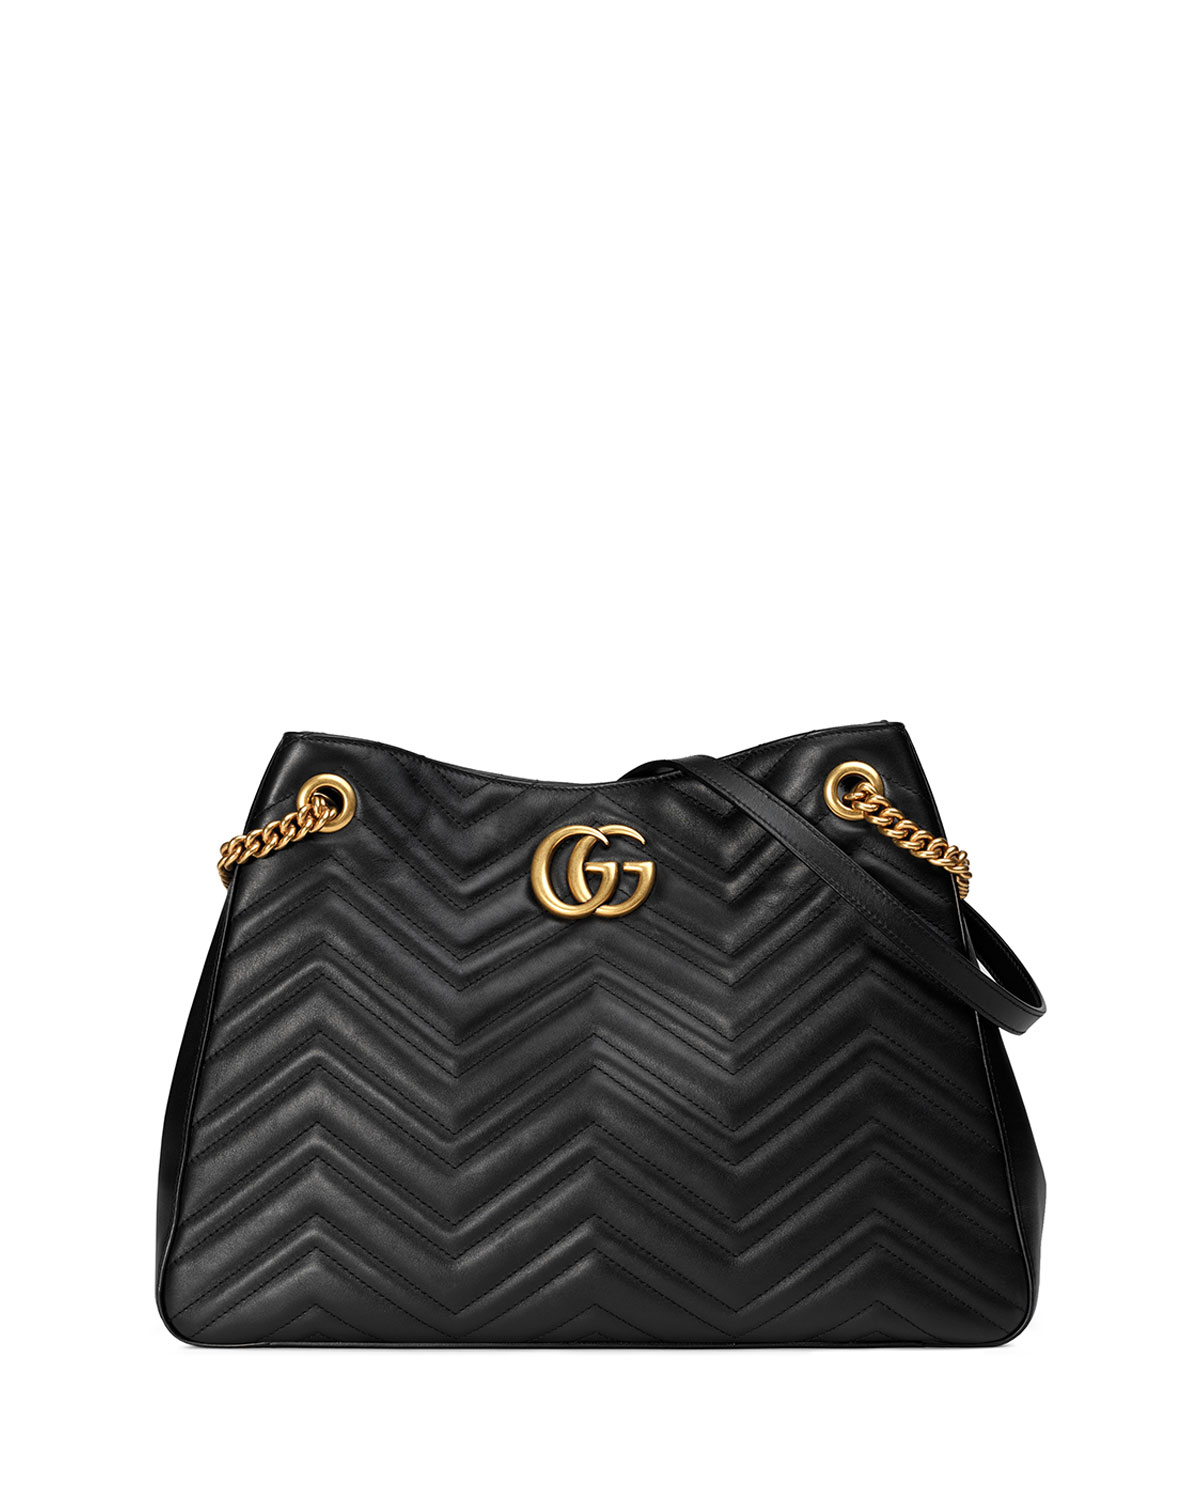 d81a08fc7cd Gucci GG Marmont Matelasse Shoulder Bag